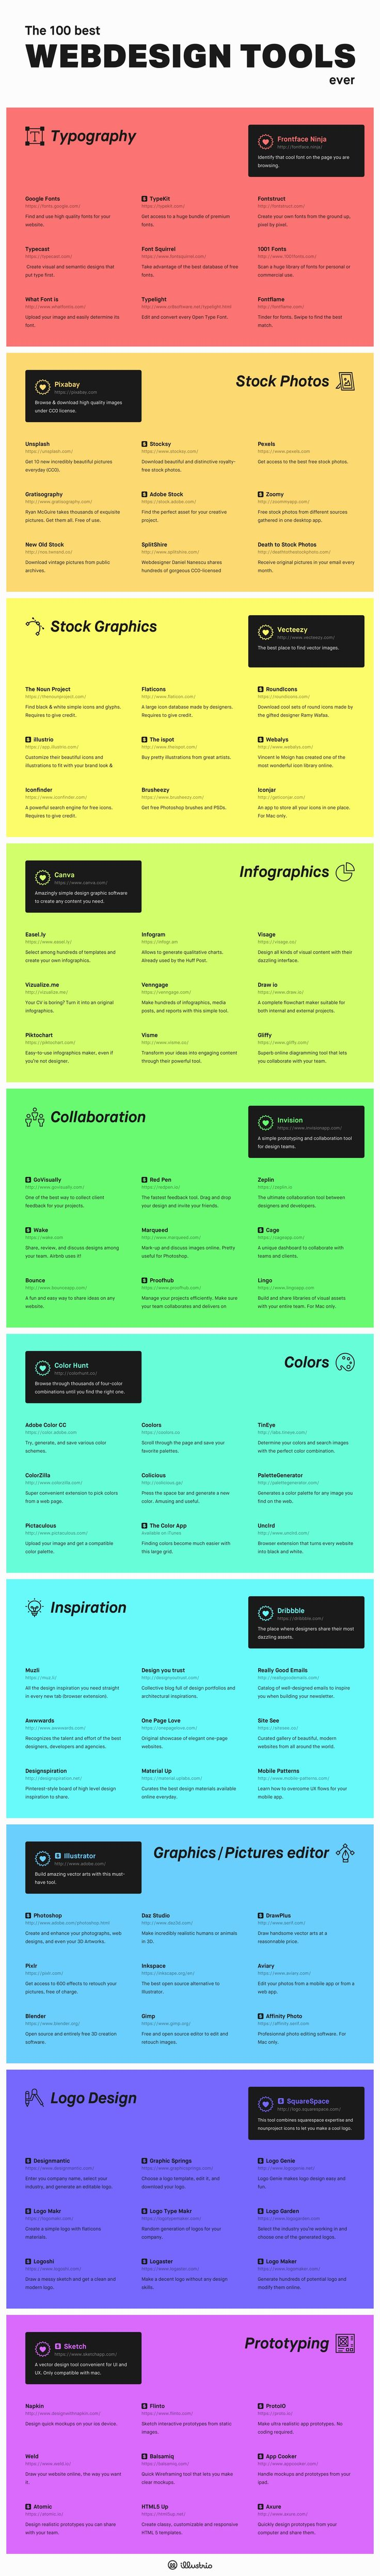 Web safe colors list - This Graphic Is Probably One Of The Best Resource List Put Together For Web Designers